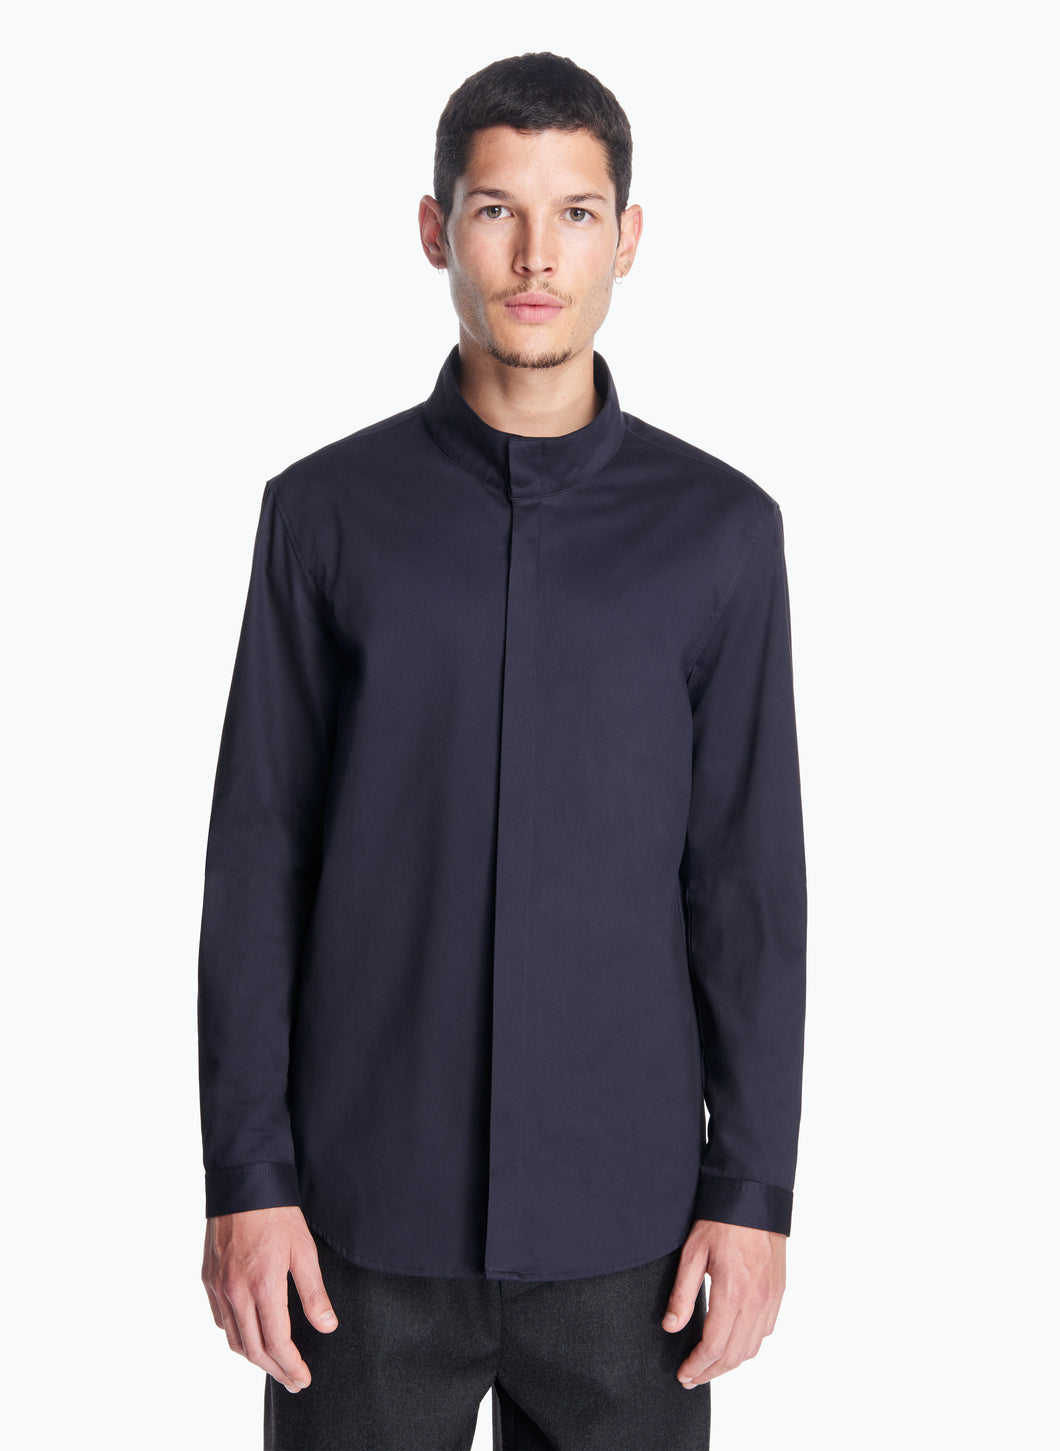 Funnel-Neck Overshirt in Navy Blue Cotton Satin